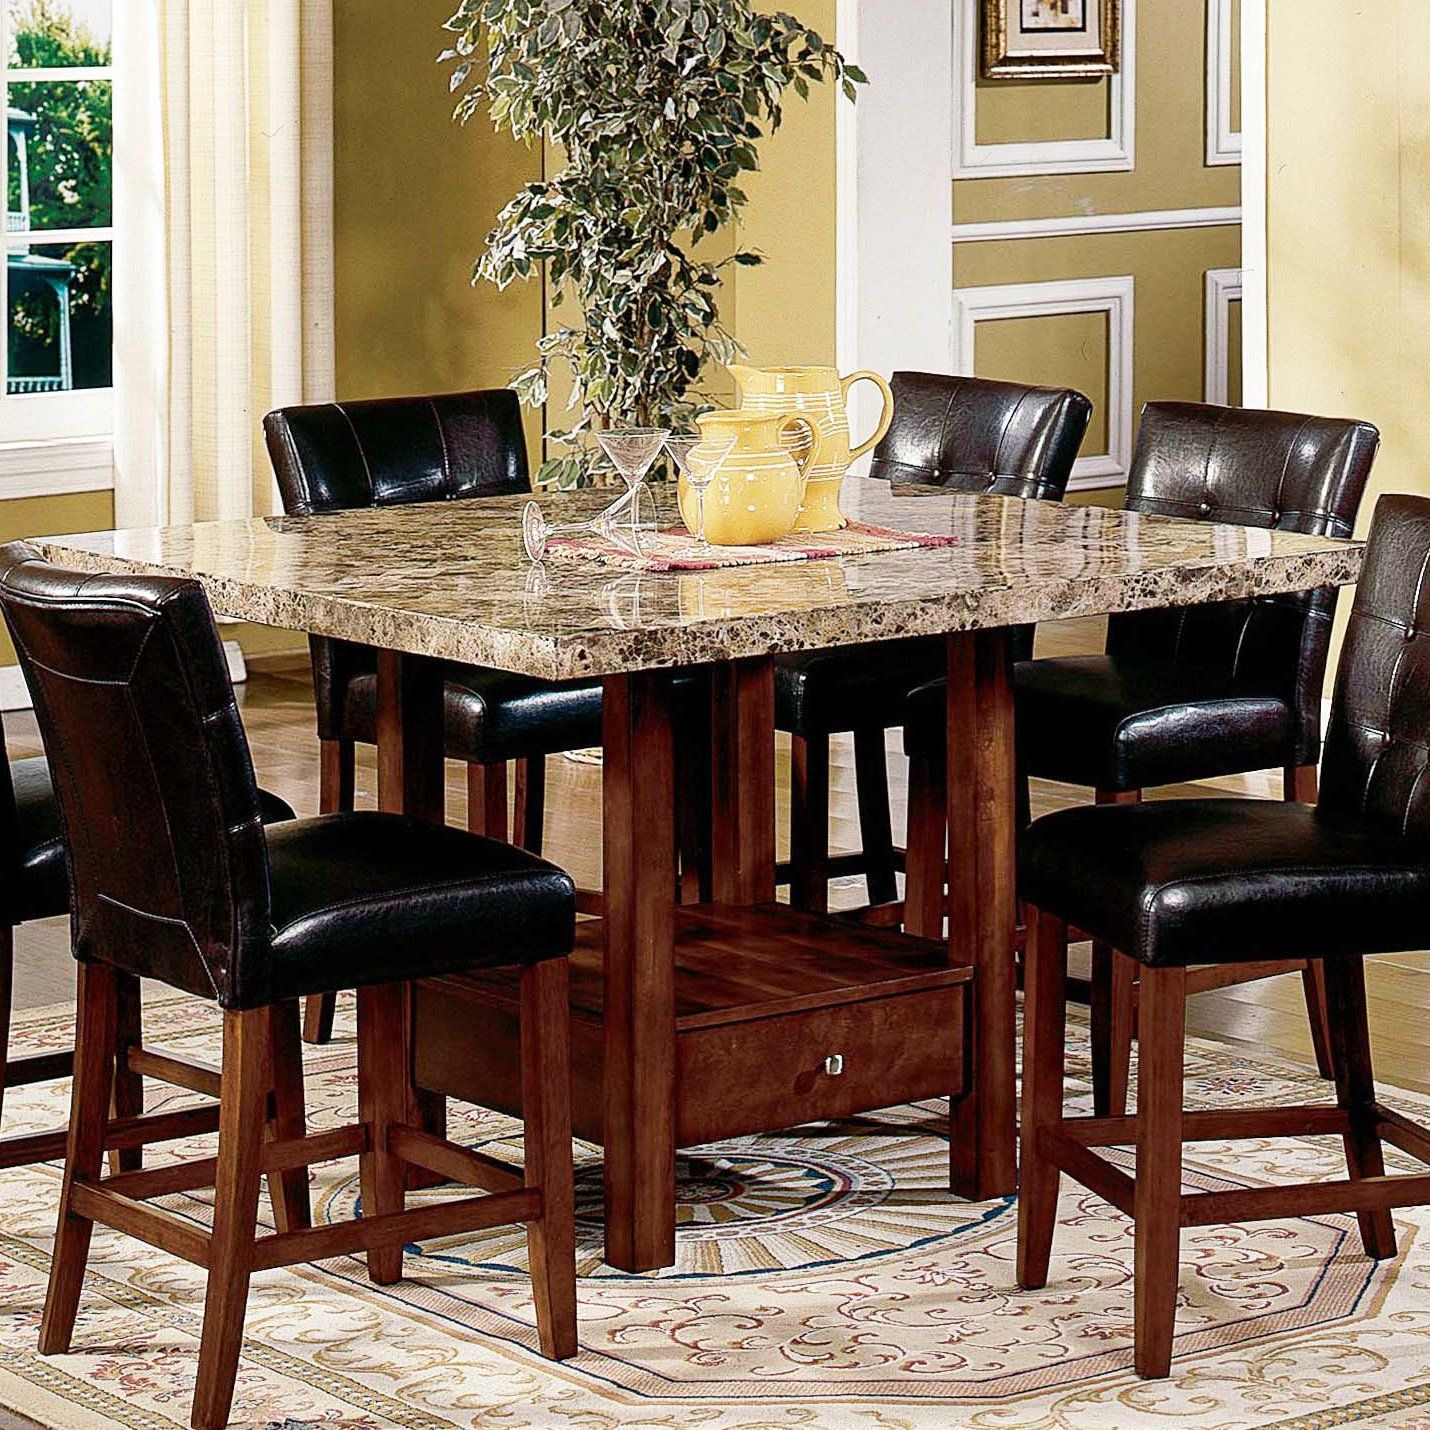 Versatile Kitchen Table And Chair Sets For Your Home: Steve Silver Montibello Marble Top Counter Height Storage